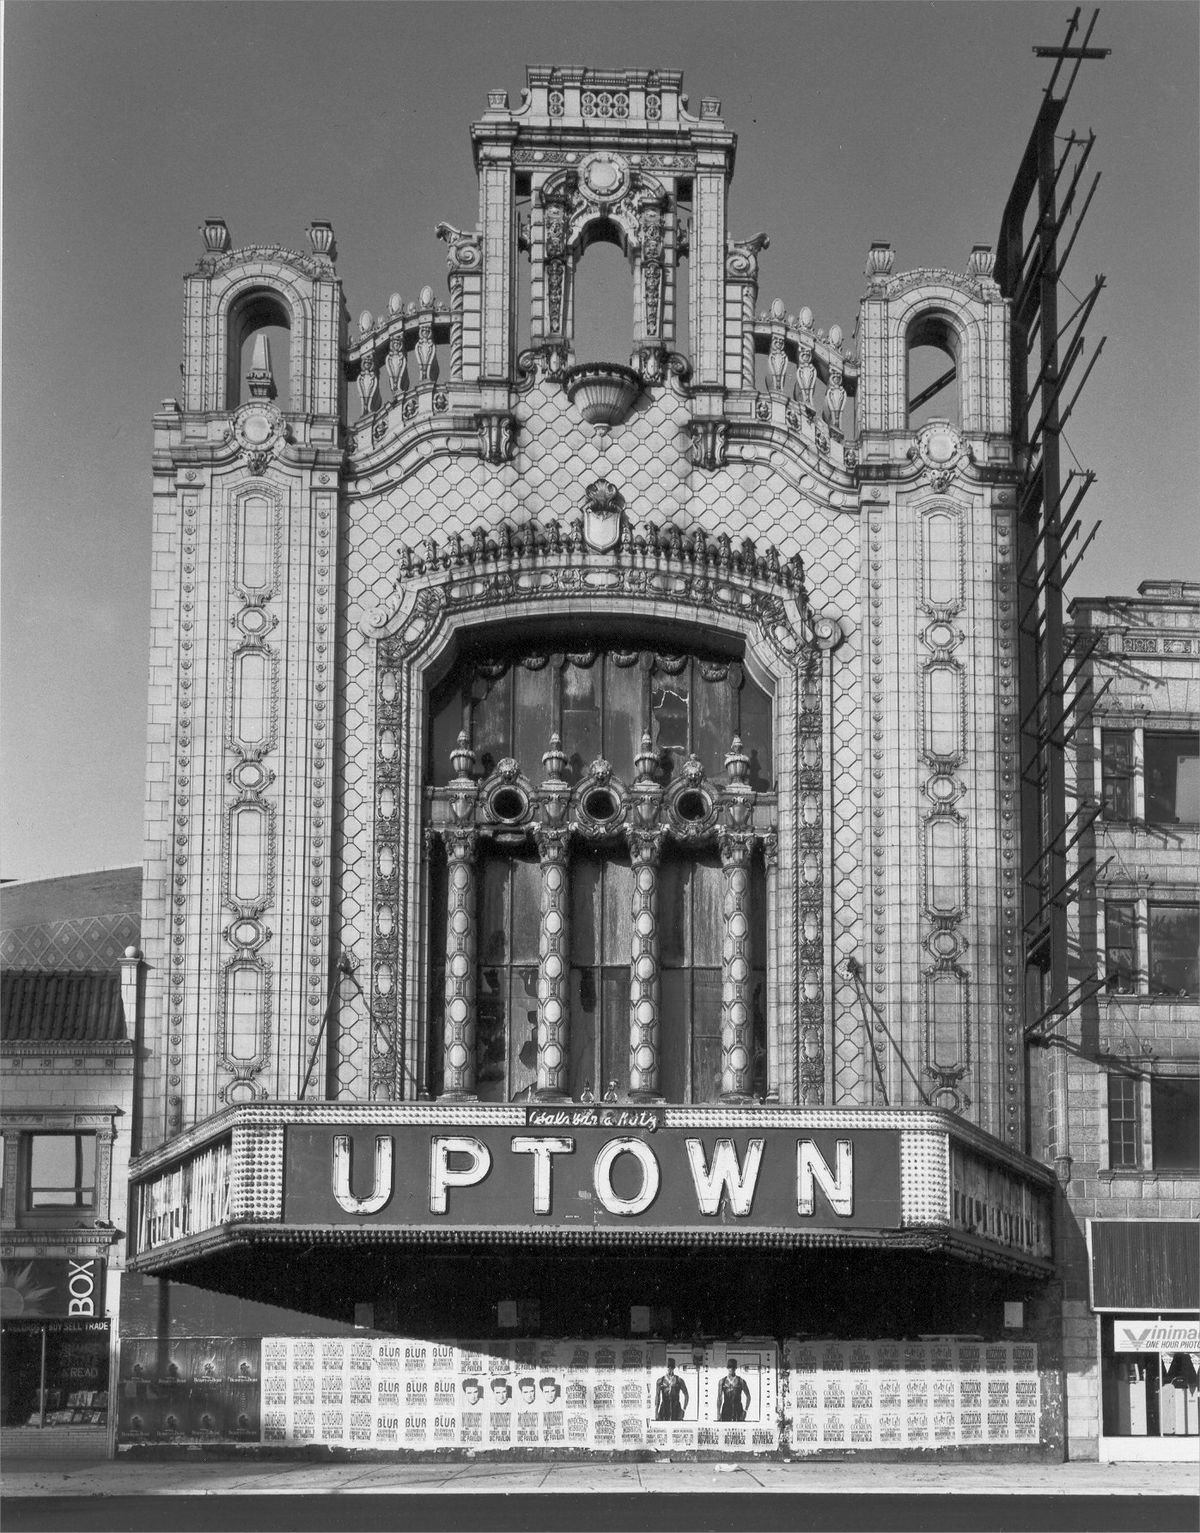 The Uptown Theatre built in 1925, was once the crown jewel of the Balaban and Katz theater chain and the nucleus of the Uptown entertainment district of the 1920s. | Sun-Times Archives